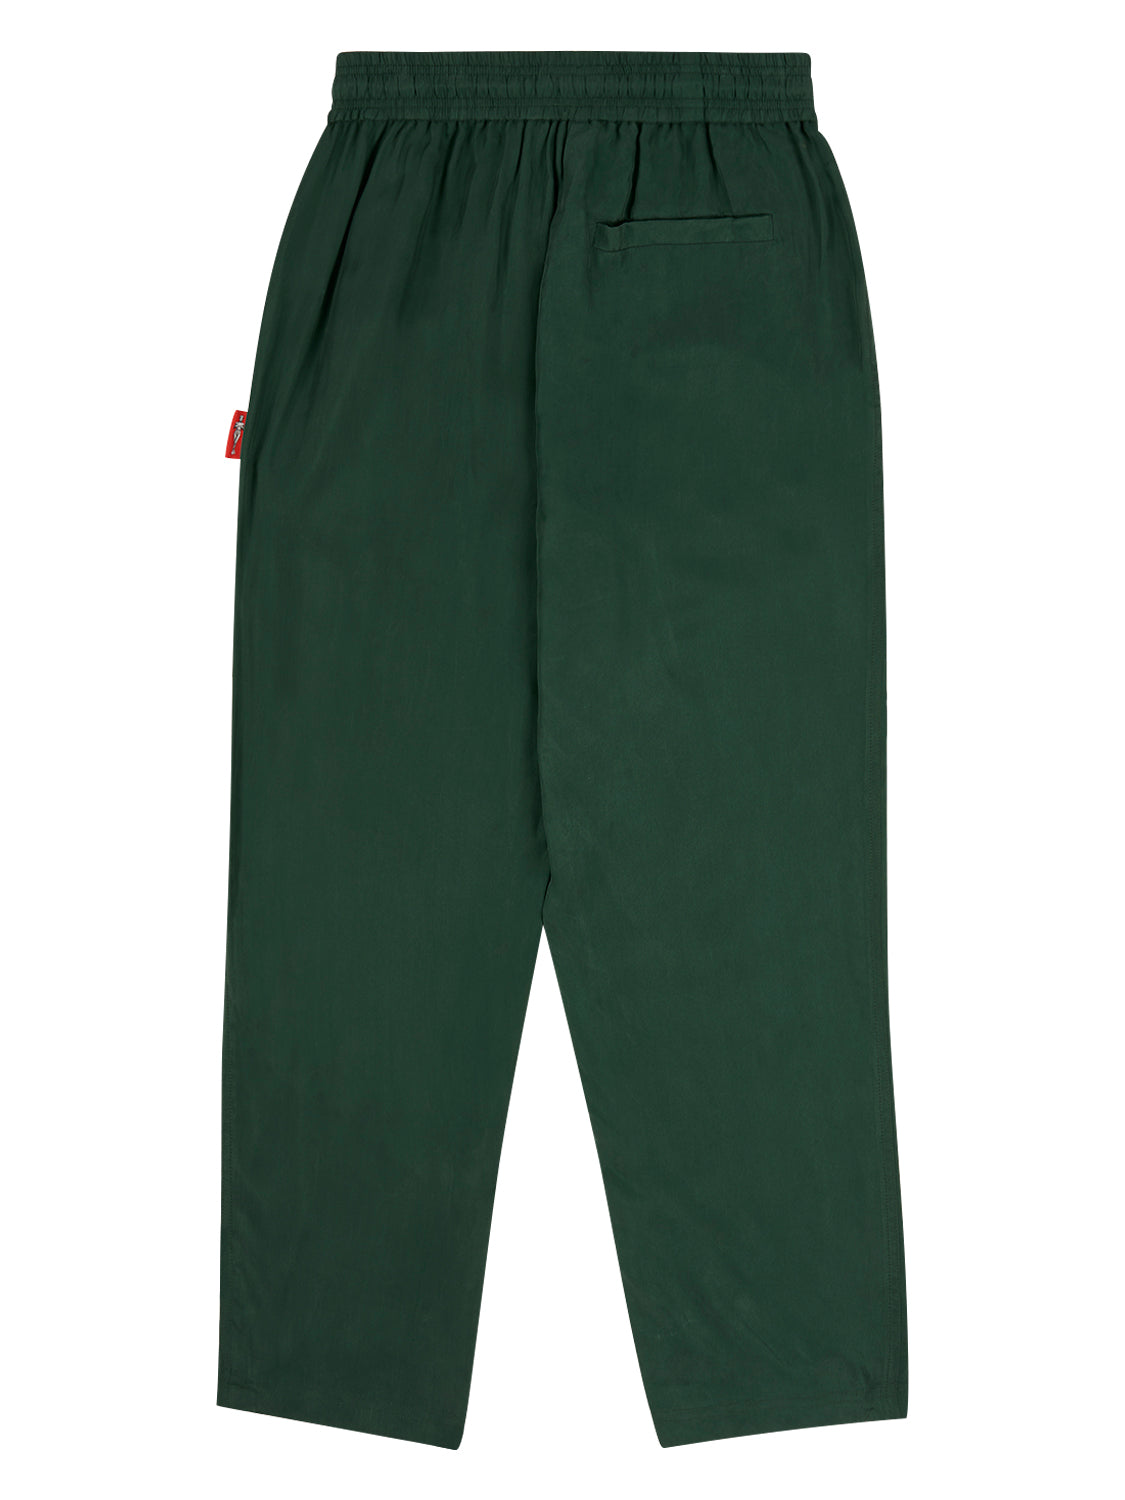 Track Pant - Green